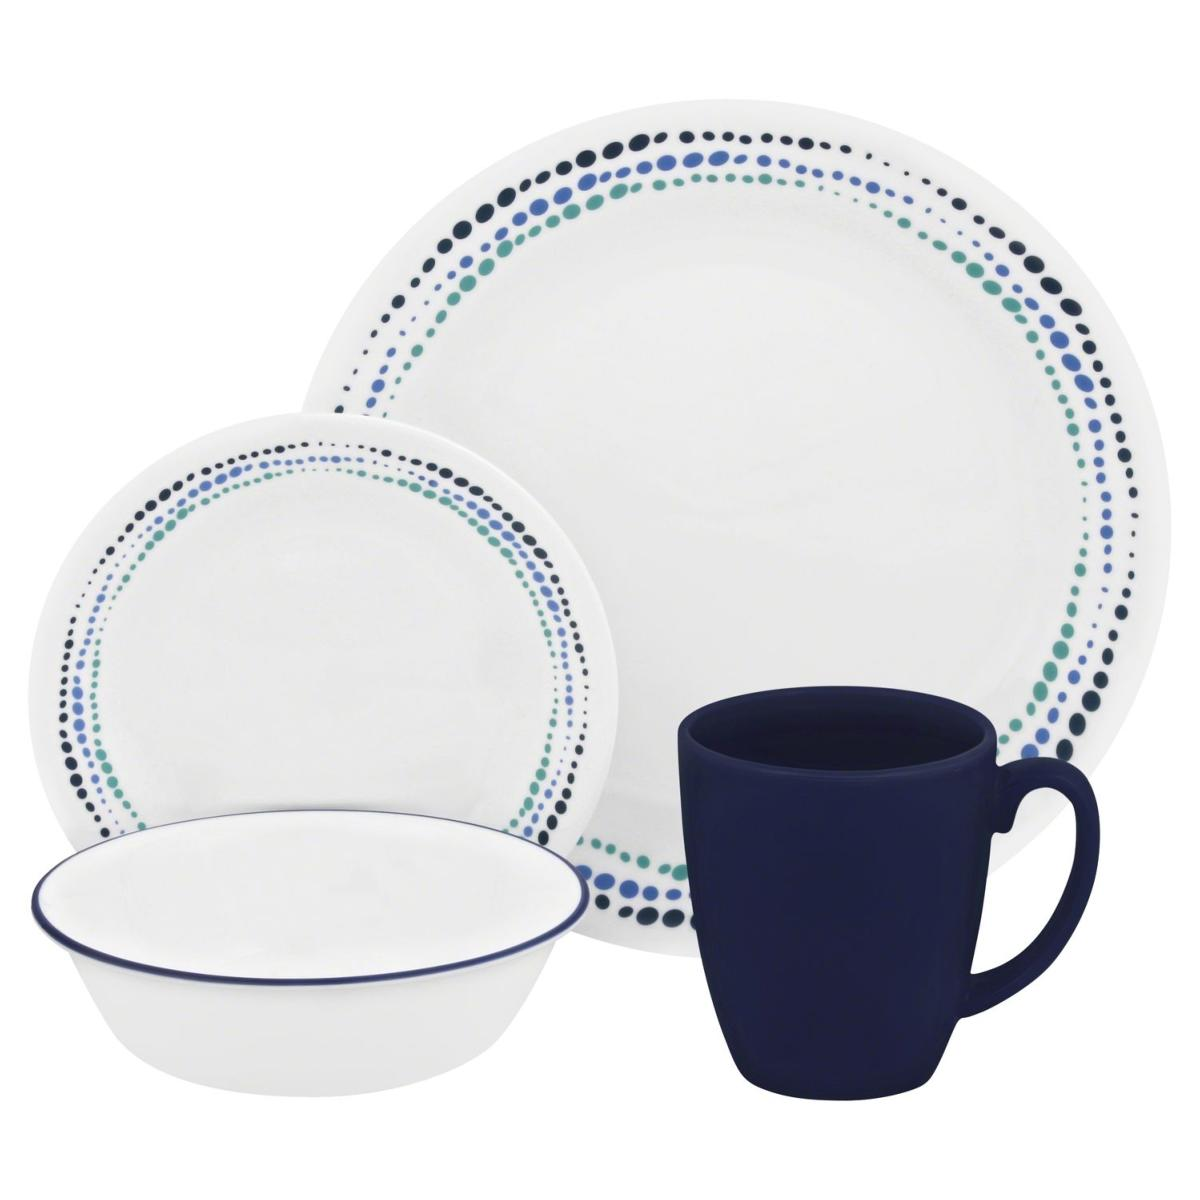 set de vaisselle corelle rond ocean blues 16 pi ces. Black Bedroom Furniture Sets. Home Design Ideas